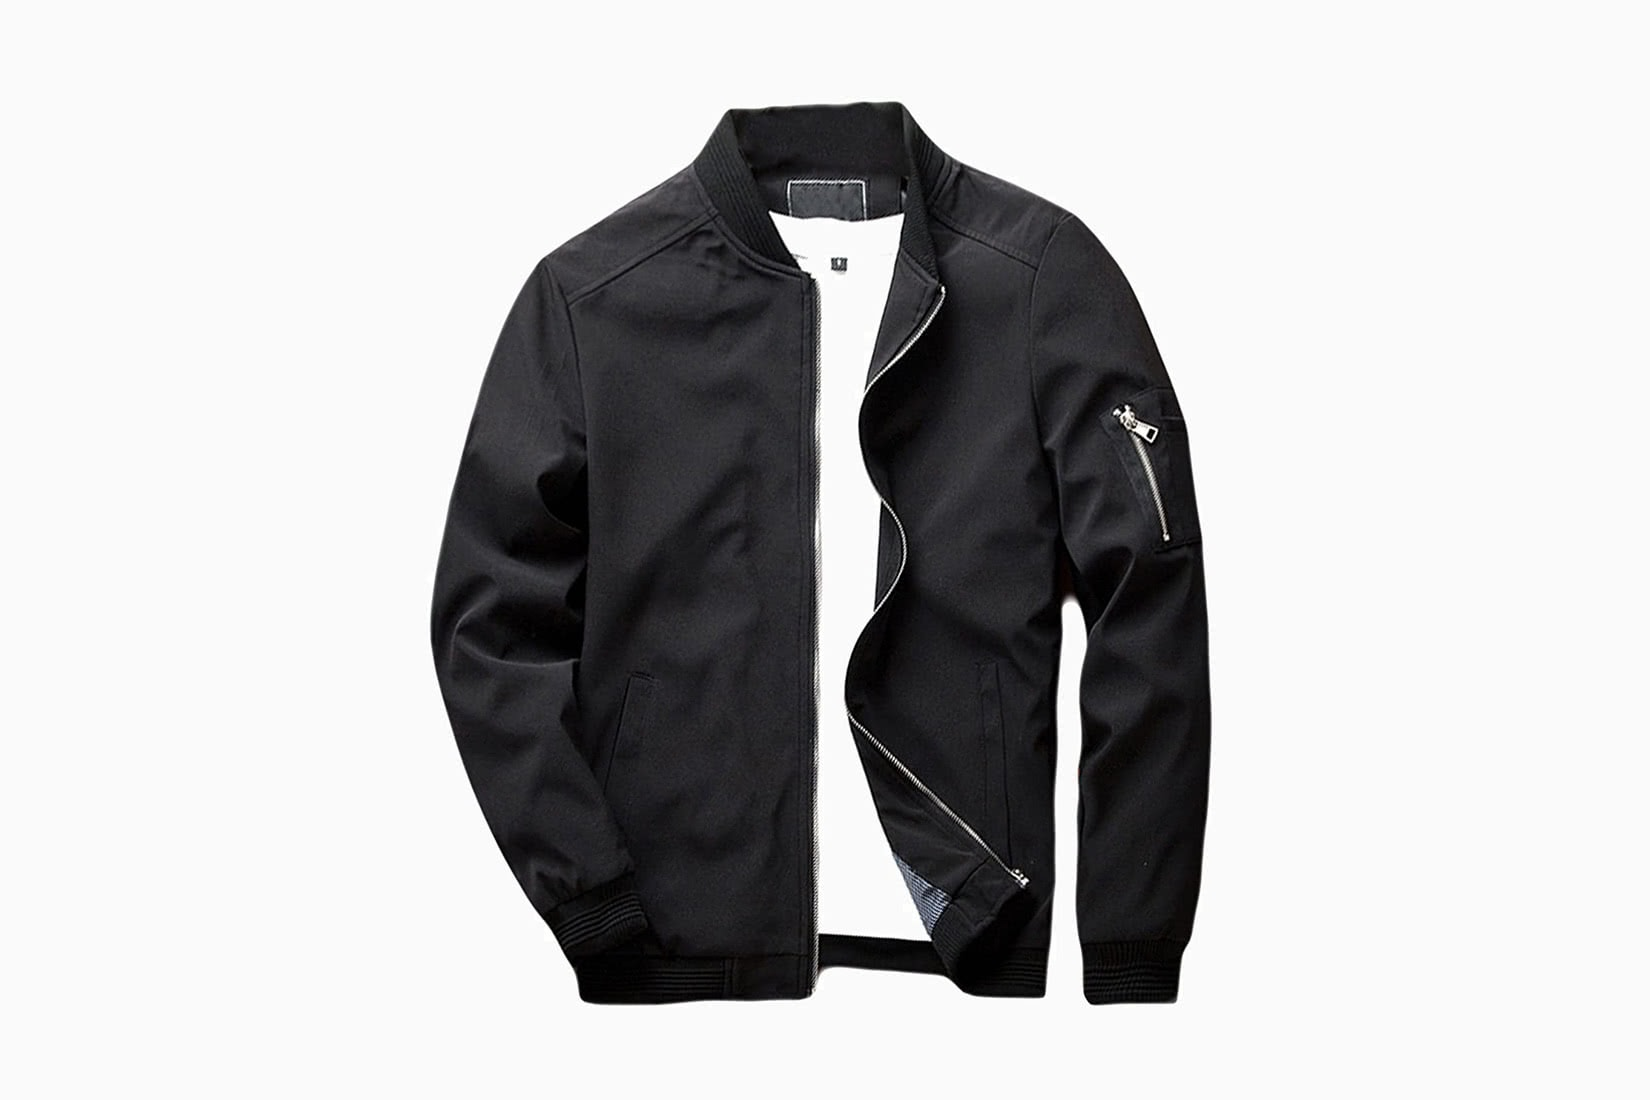 best men bomber jacket value Sandbank Softshell review - Luxe Digital